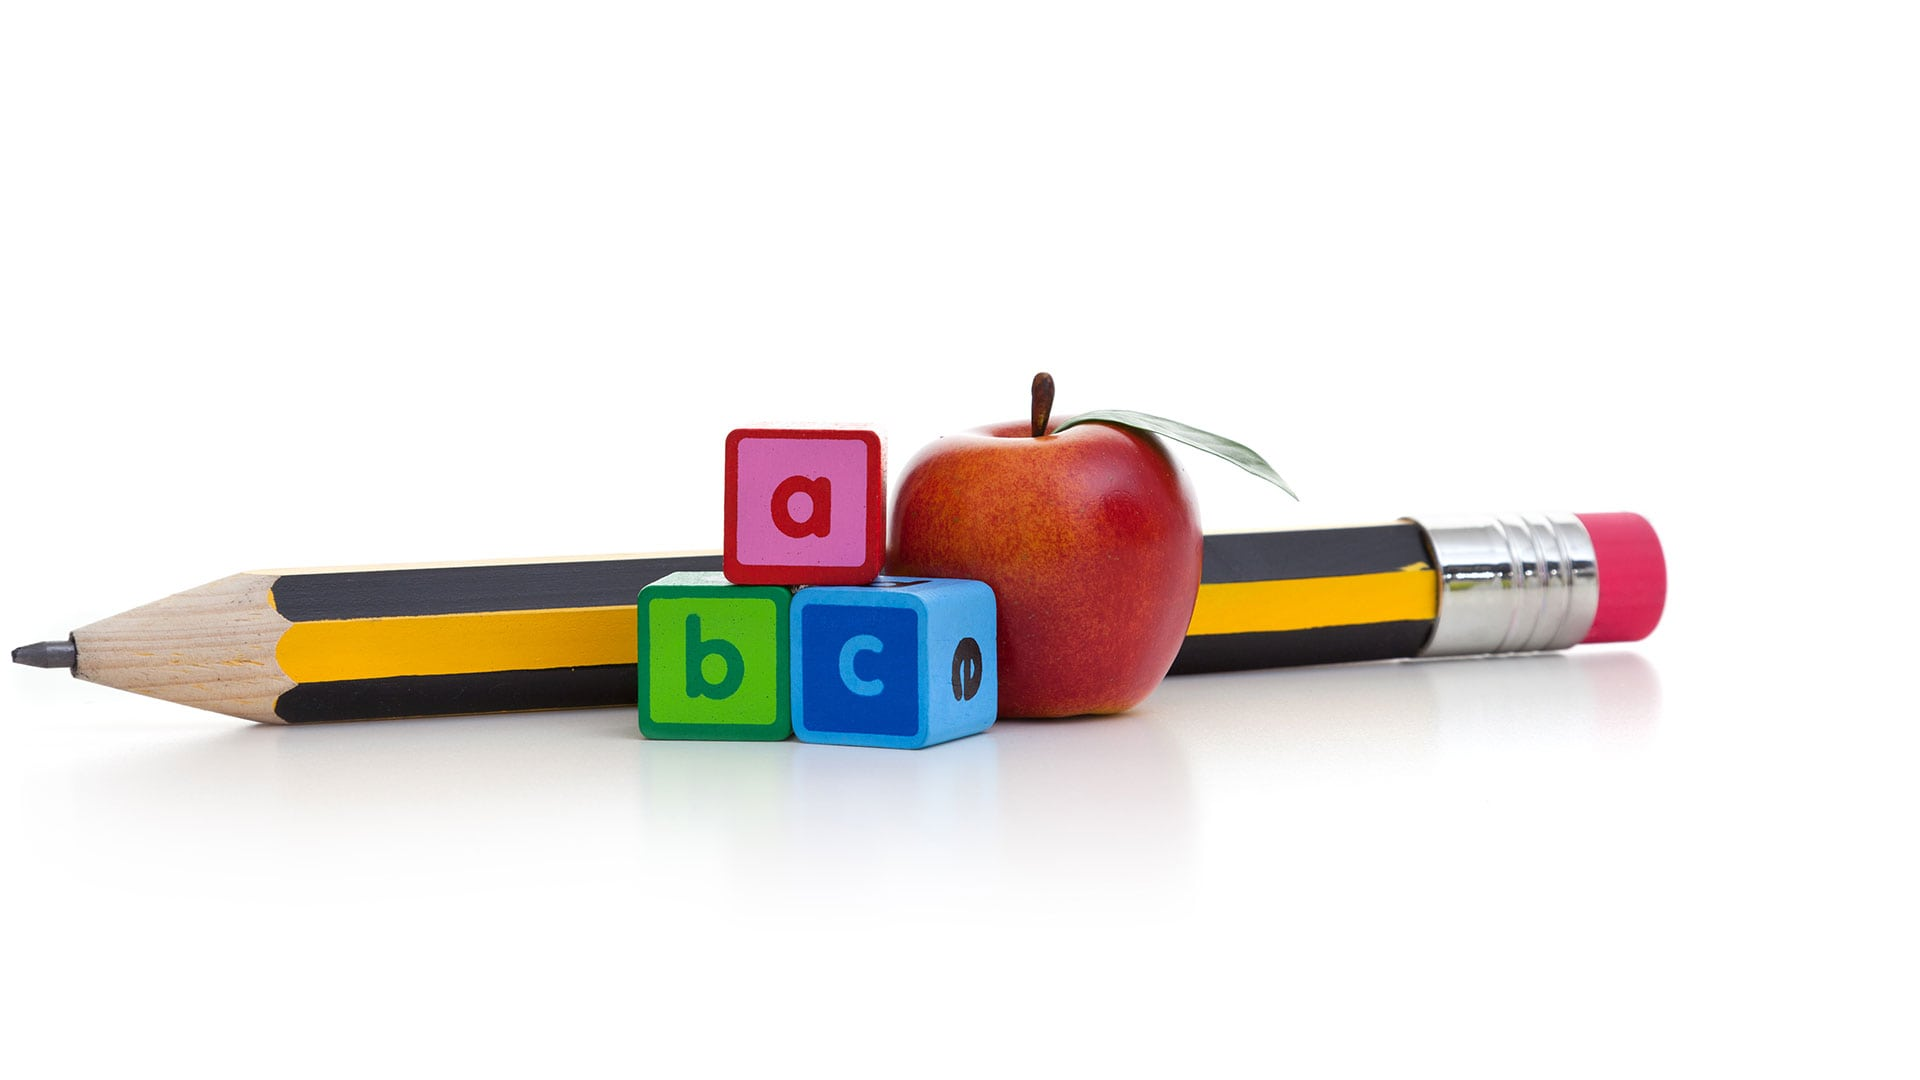 Pencil with ABC blocks and an apple against a white background